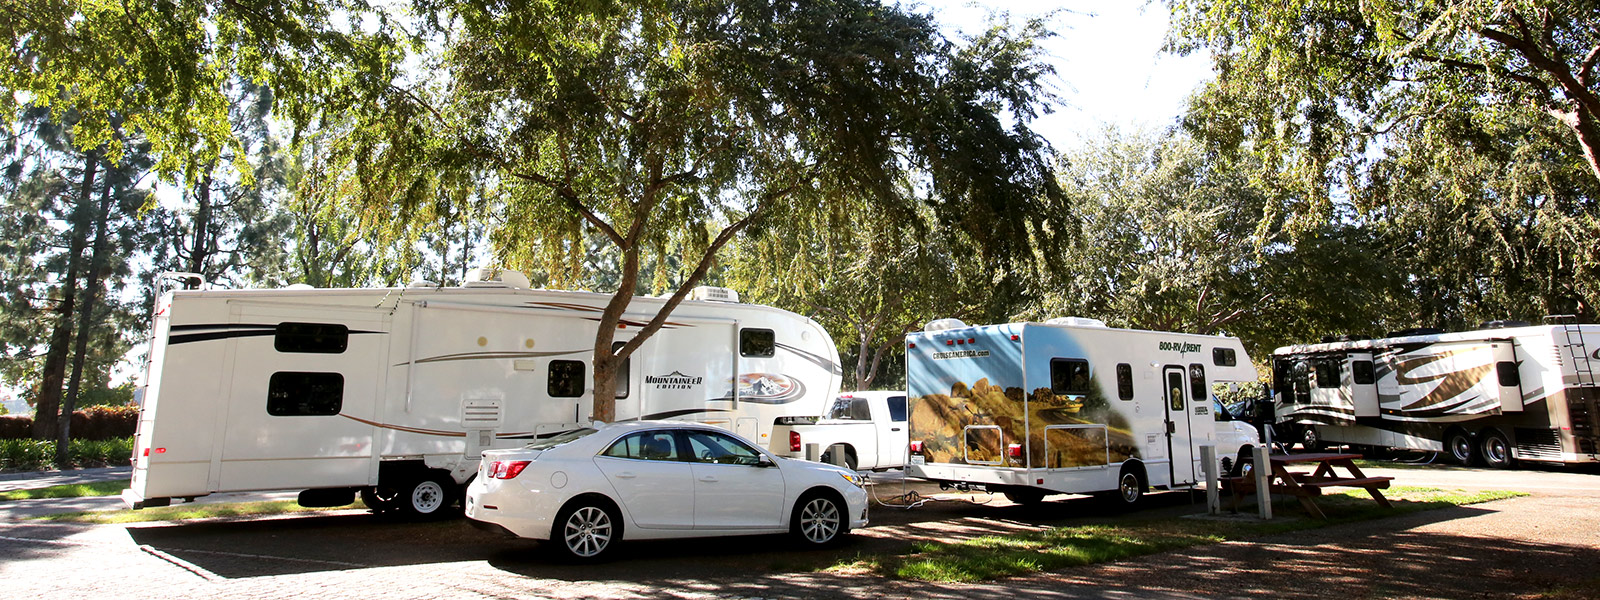 Fairplex Rv Park Rent Camping Cabins Or Rv Space With Full Amenities